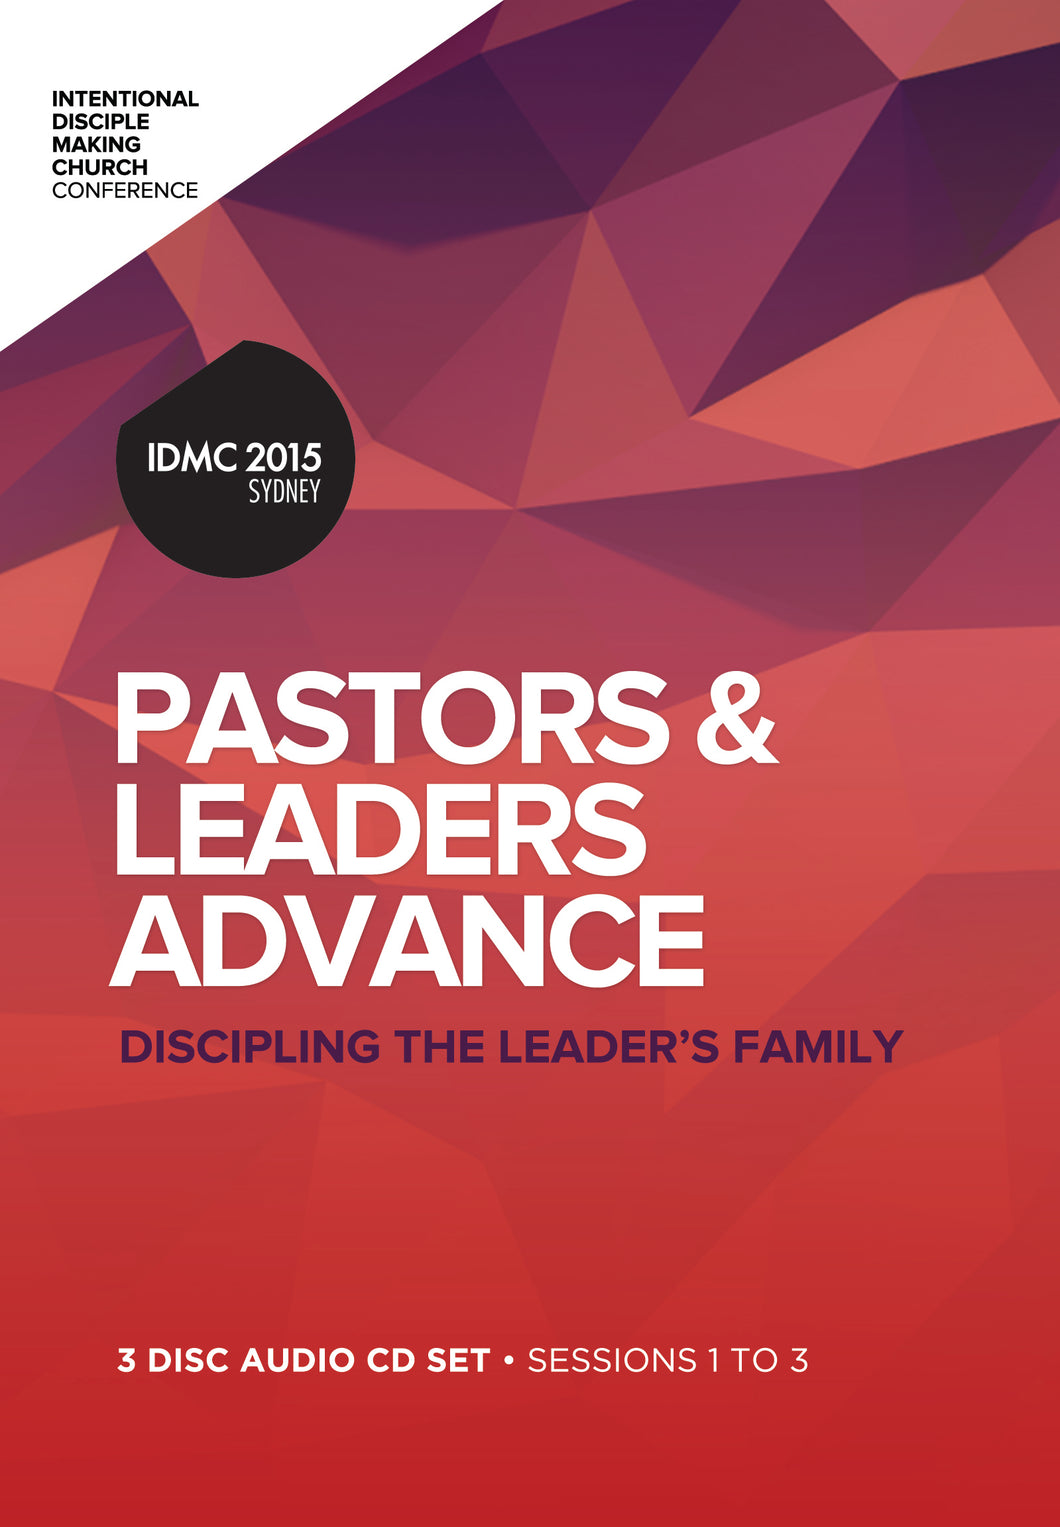 2015 IDMC Conference: P&L Advance - Disciplining the Leaders Family CD Set